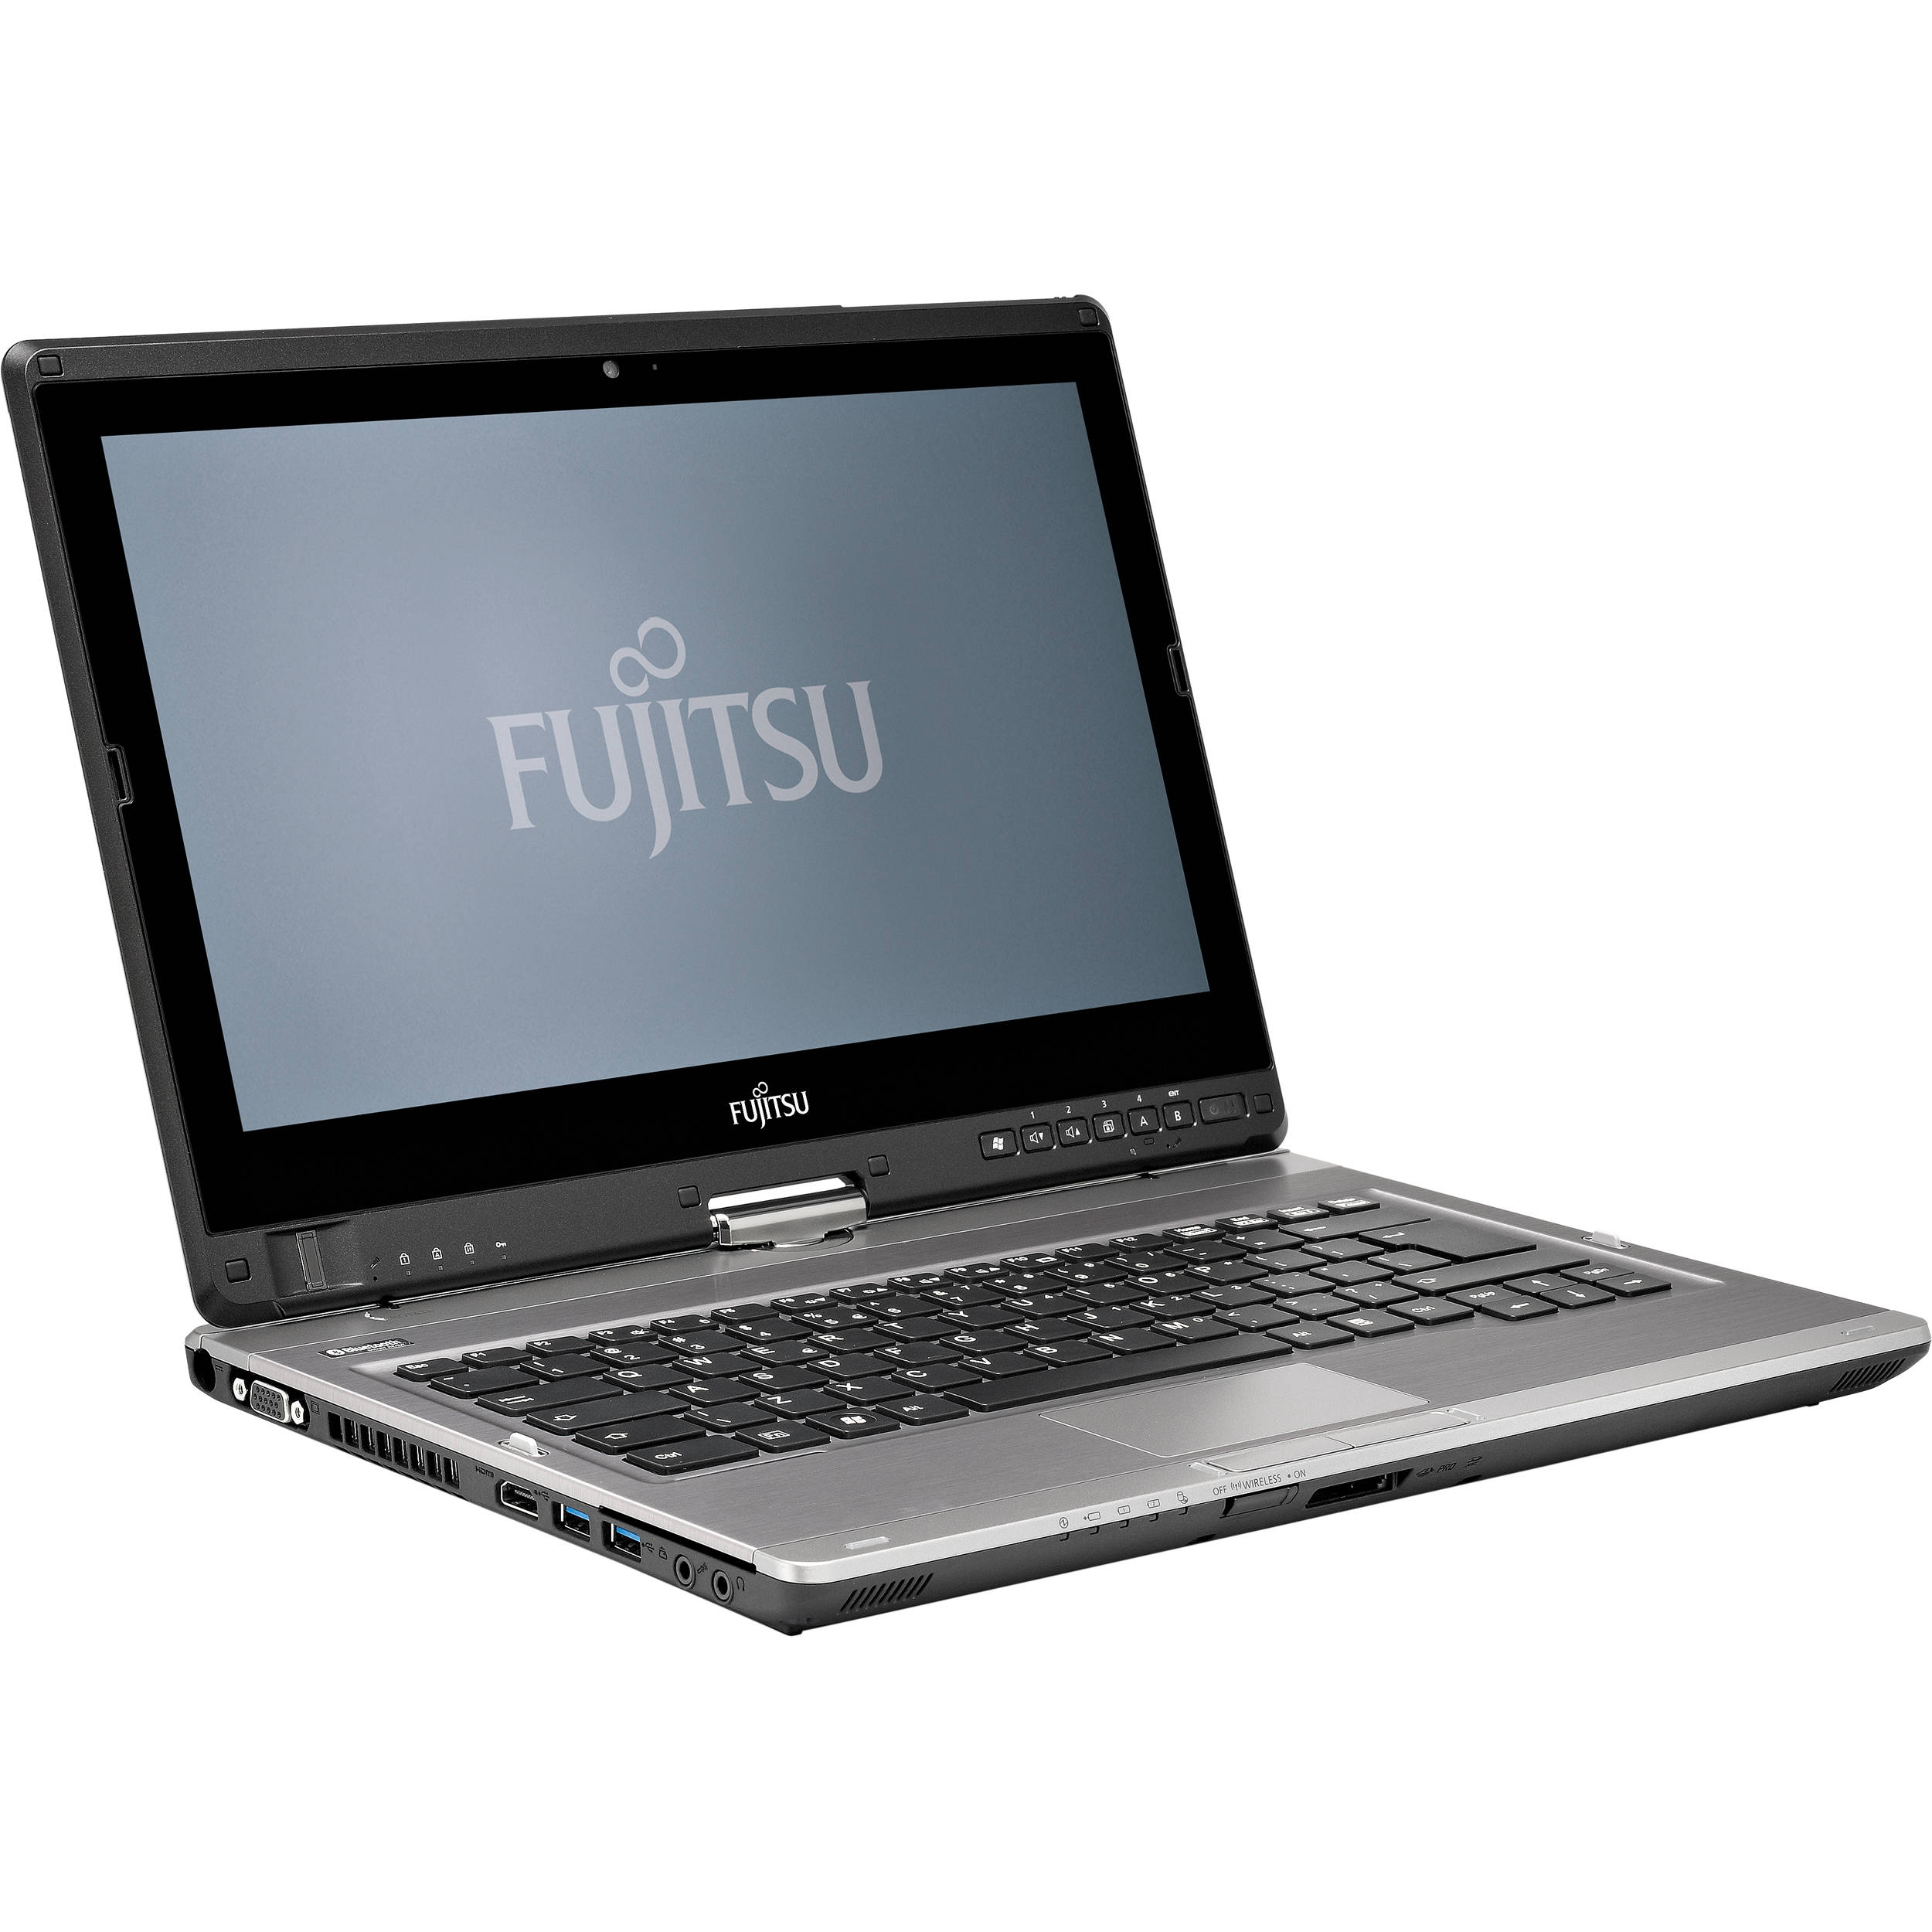 "Fujitsu LIFEBOOK T902 13.3"" Multi-Touch Convertible Notebook"